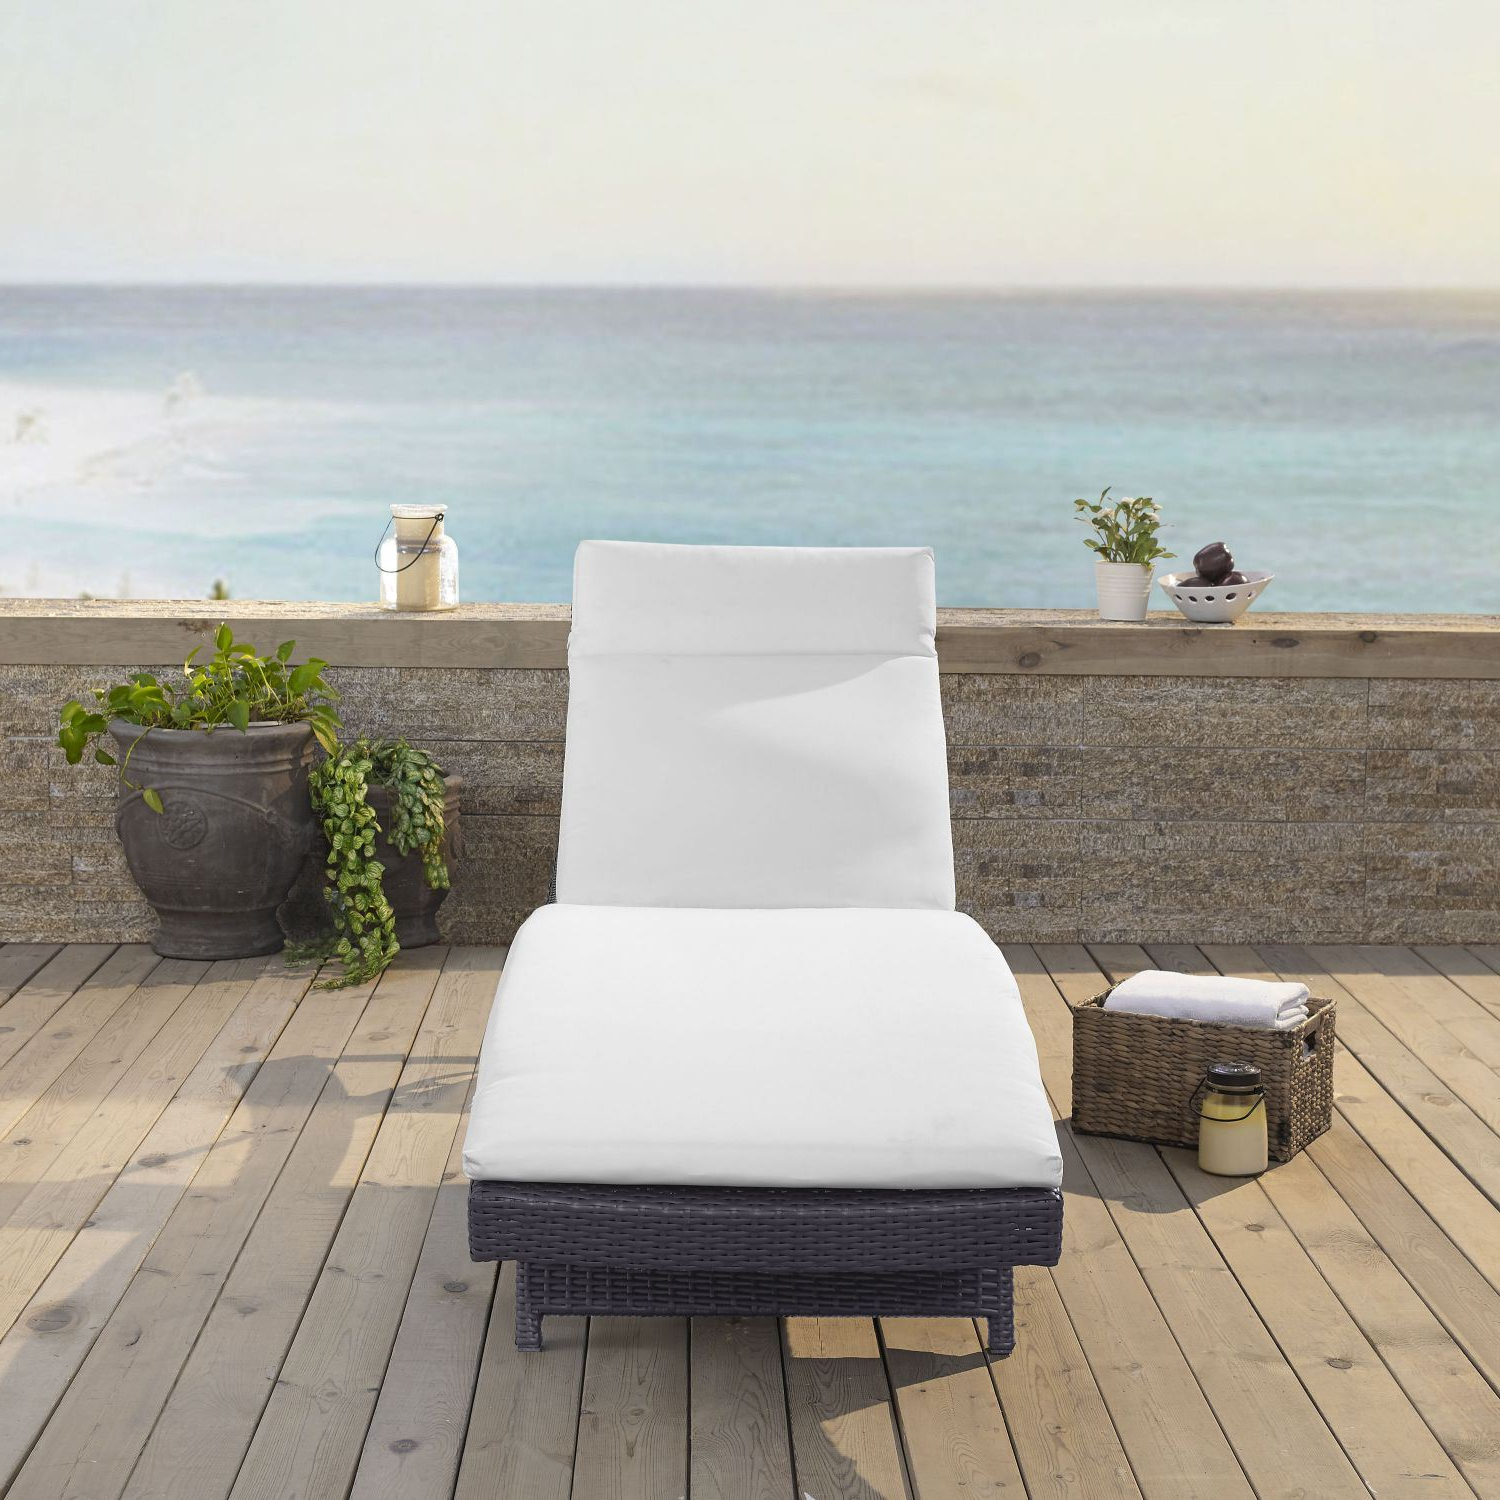 Biscayne Chaise Lounge With Well Known Biscayne White Chaise Lounge Chairs (View 10 of 25)